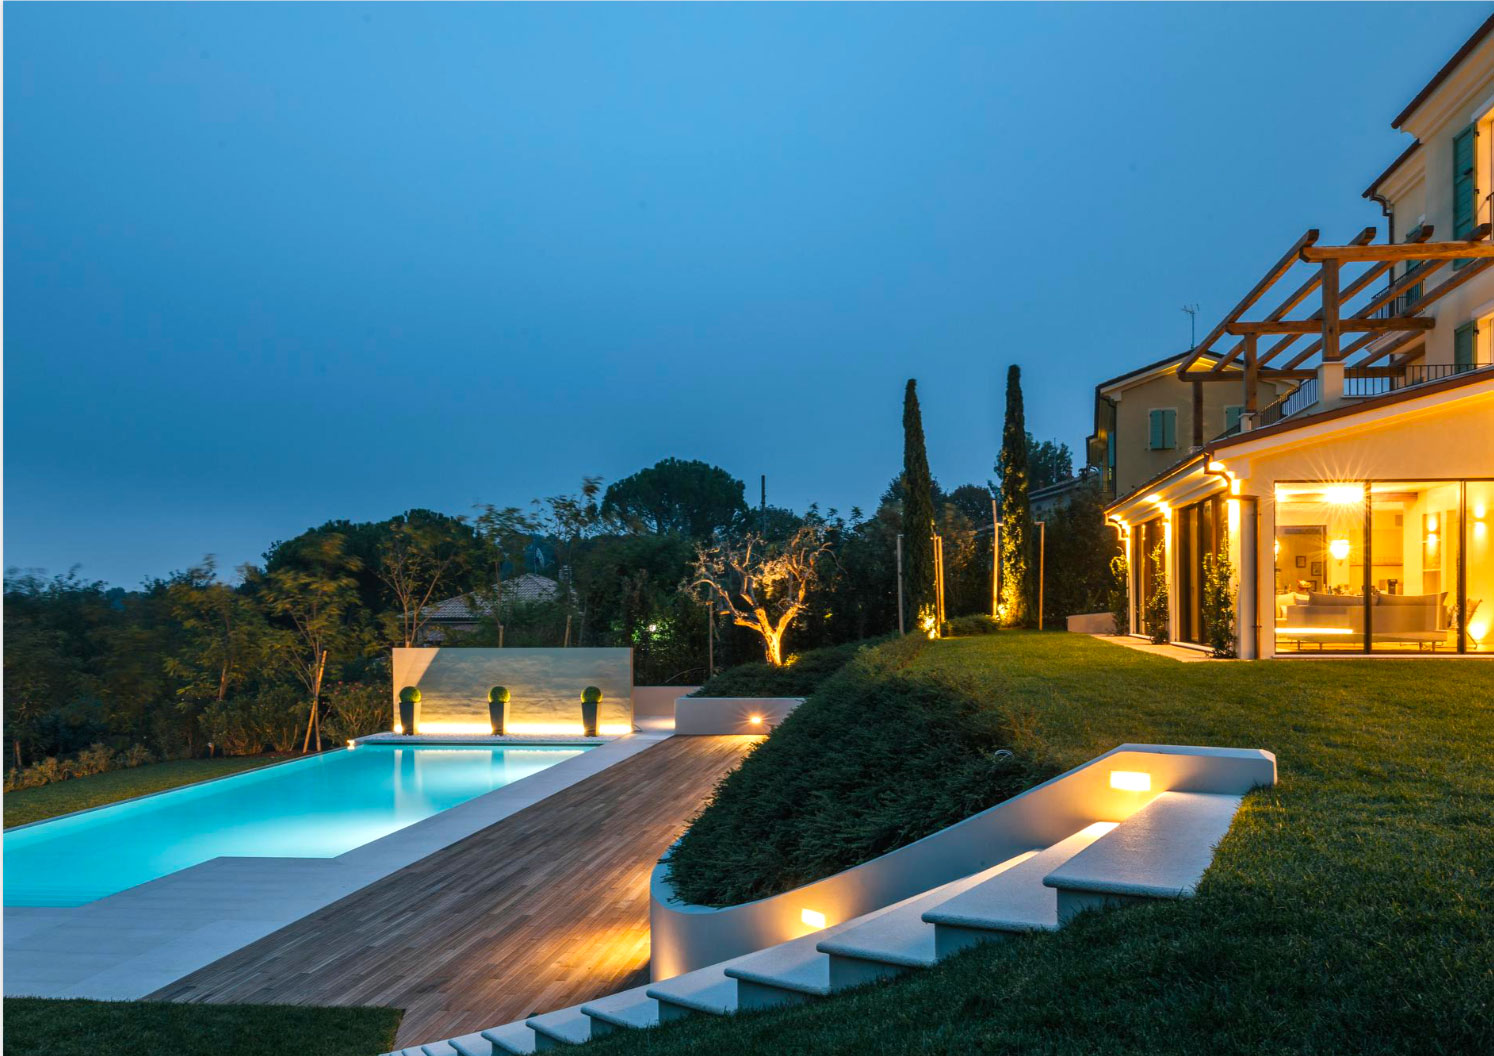 The retreat is to be held in the beautiful Villa Olivo, close to Le Marche. - This stunning Villa, with its 6 double bedrooms, is perfect for a group looking for a luxurious and exquisite stay, with friends, families or groups. For more information on the Villa follow the link below.